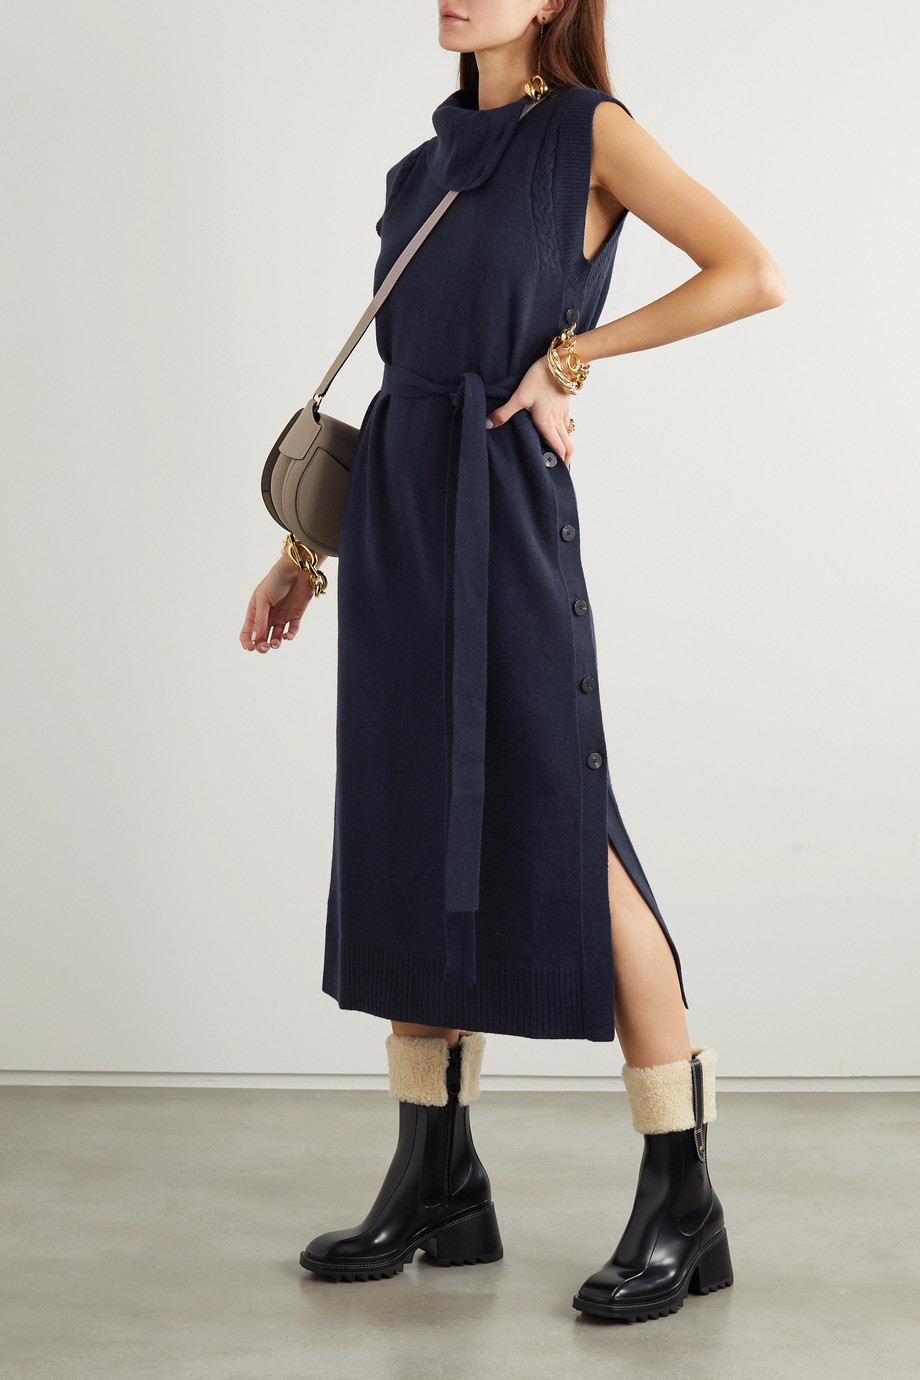 Chloé Belted button-detailed wool and cashmere-blend midi dress